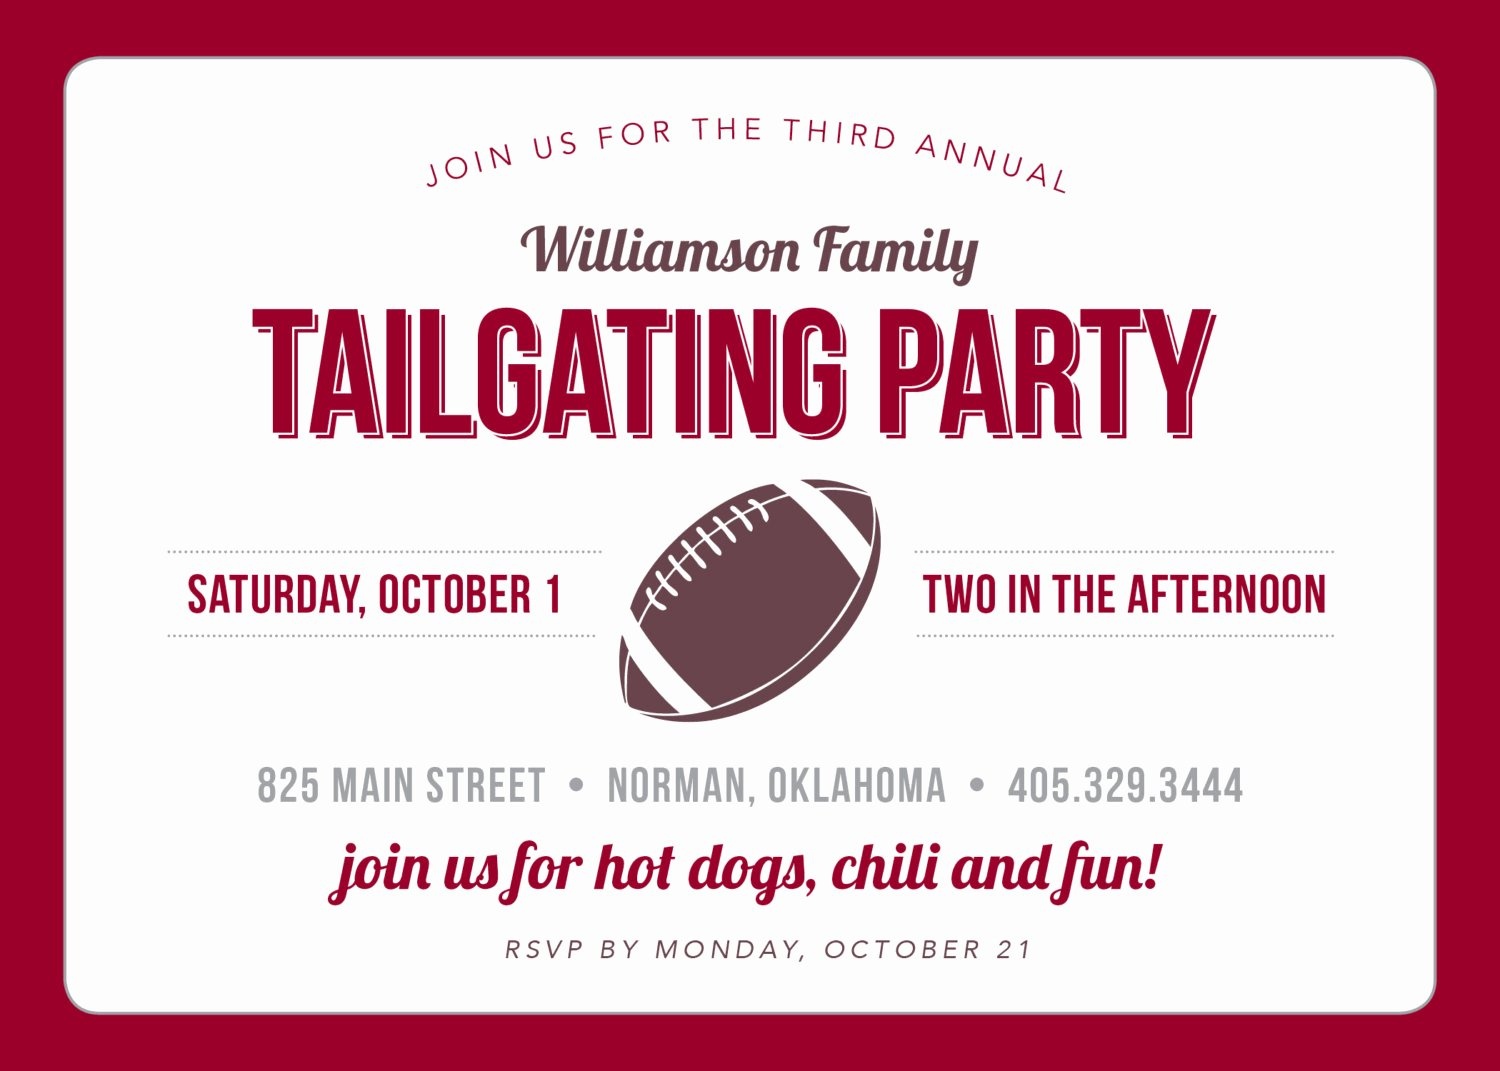 Tailgate Party Invitation Template Lovely Tailgate Party Invitation by touiesdesign On Etsy